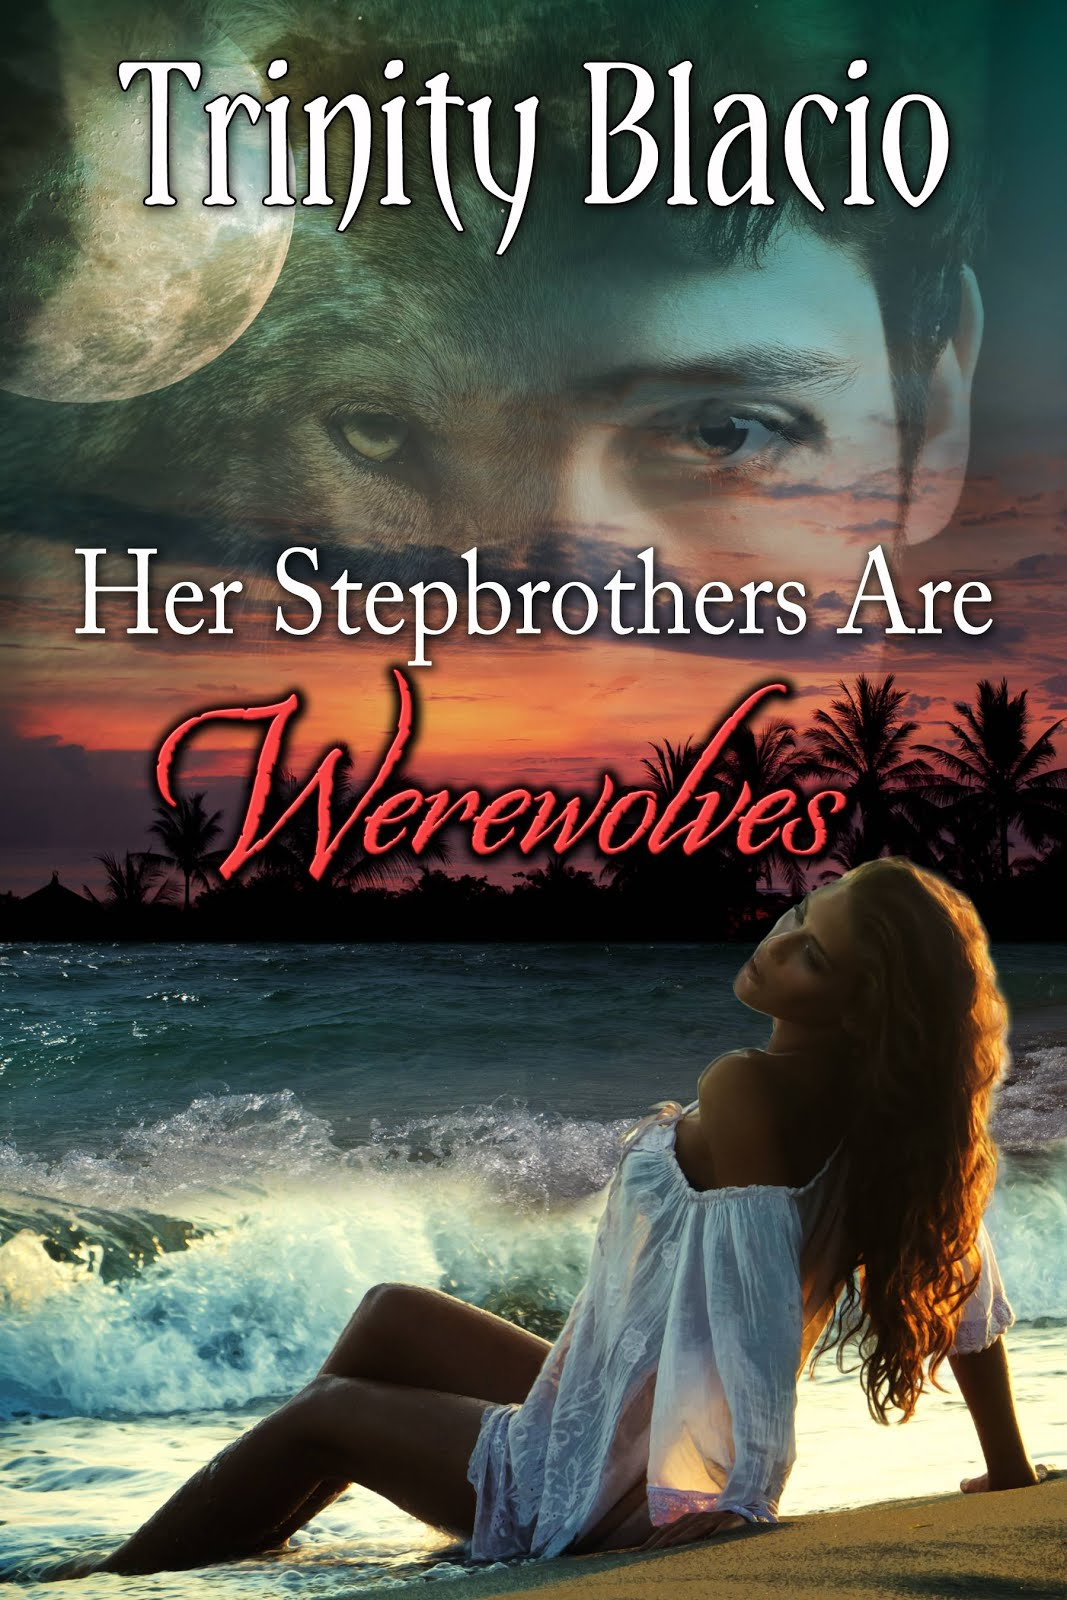 Her Stepbrothers are Werewolves